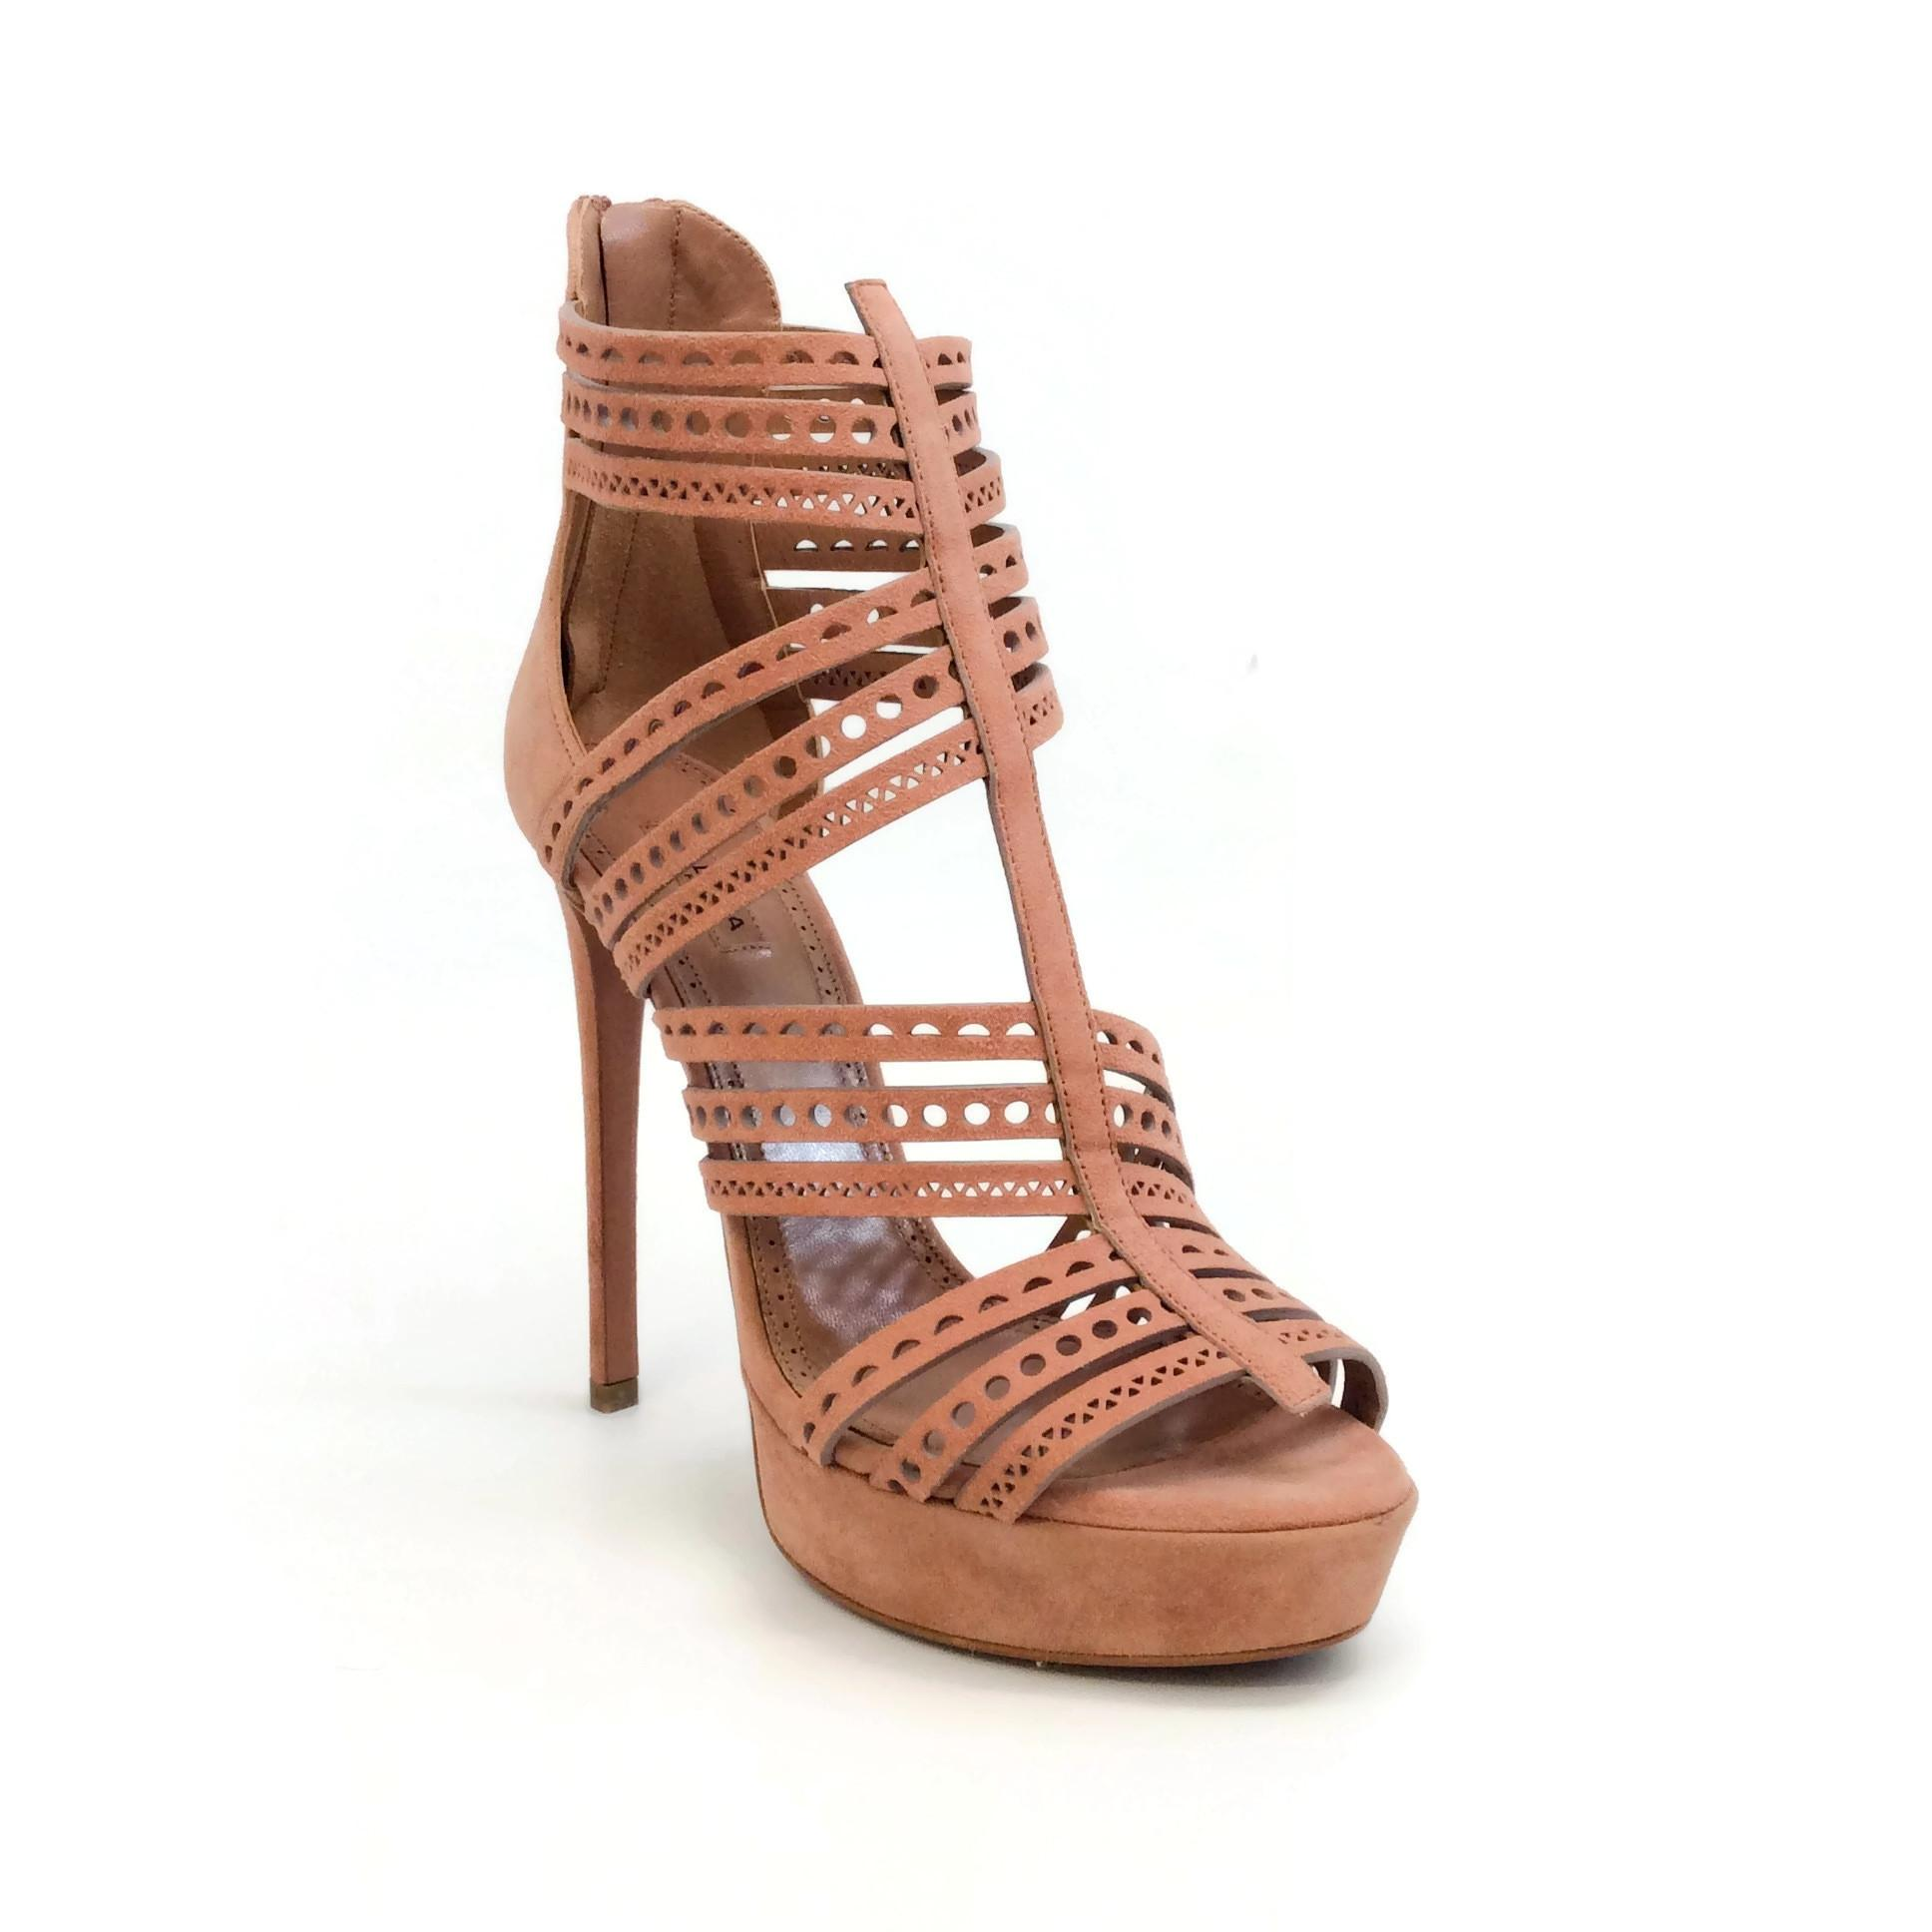 ALAÏA Blush Suede Lasercut Cage Pumps Size EU 38.5 (Approx. US 8.5) Regular (M, B)